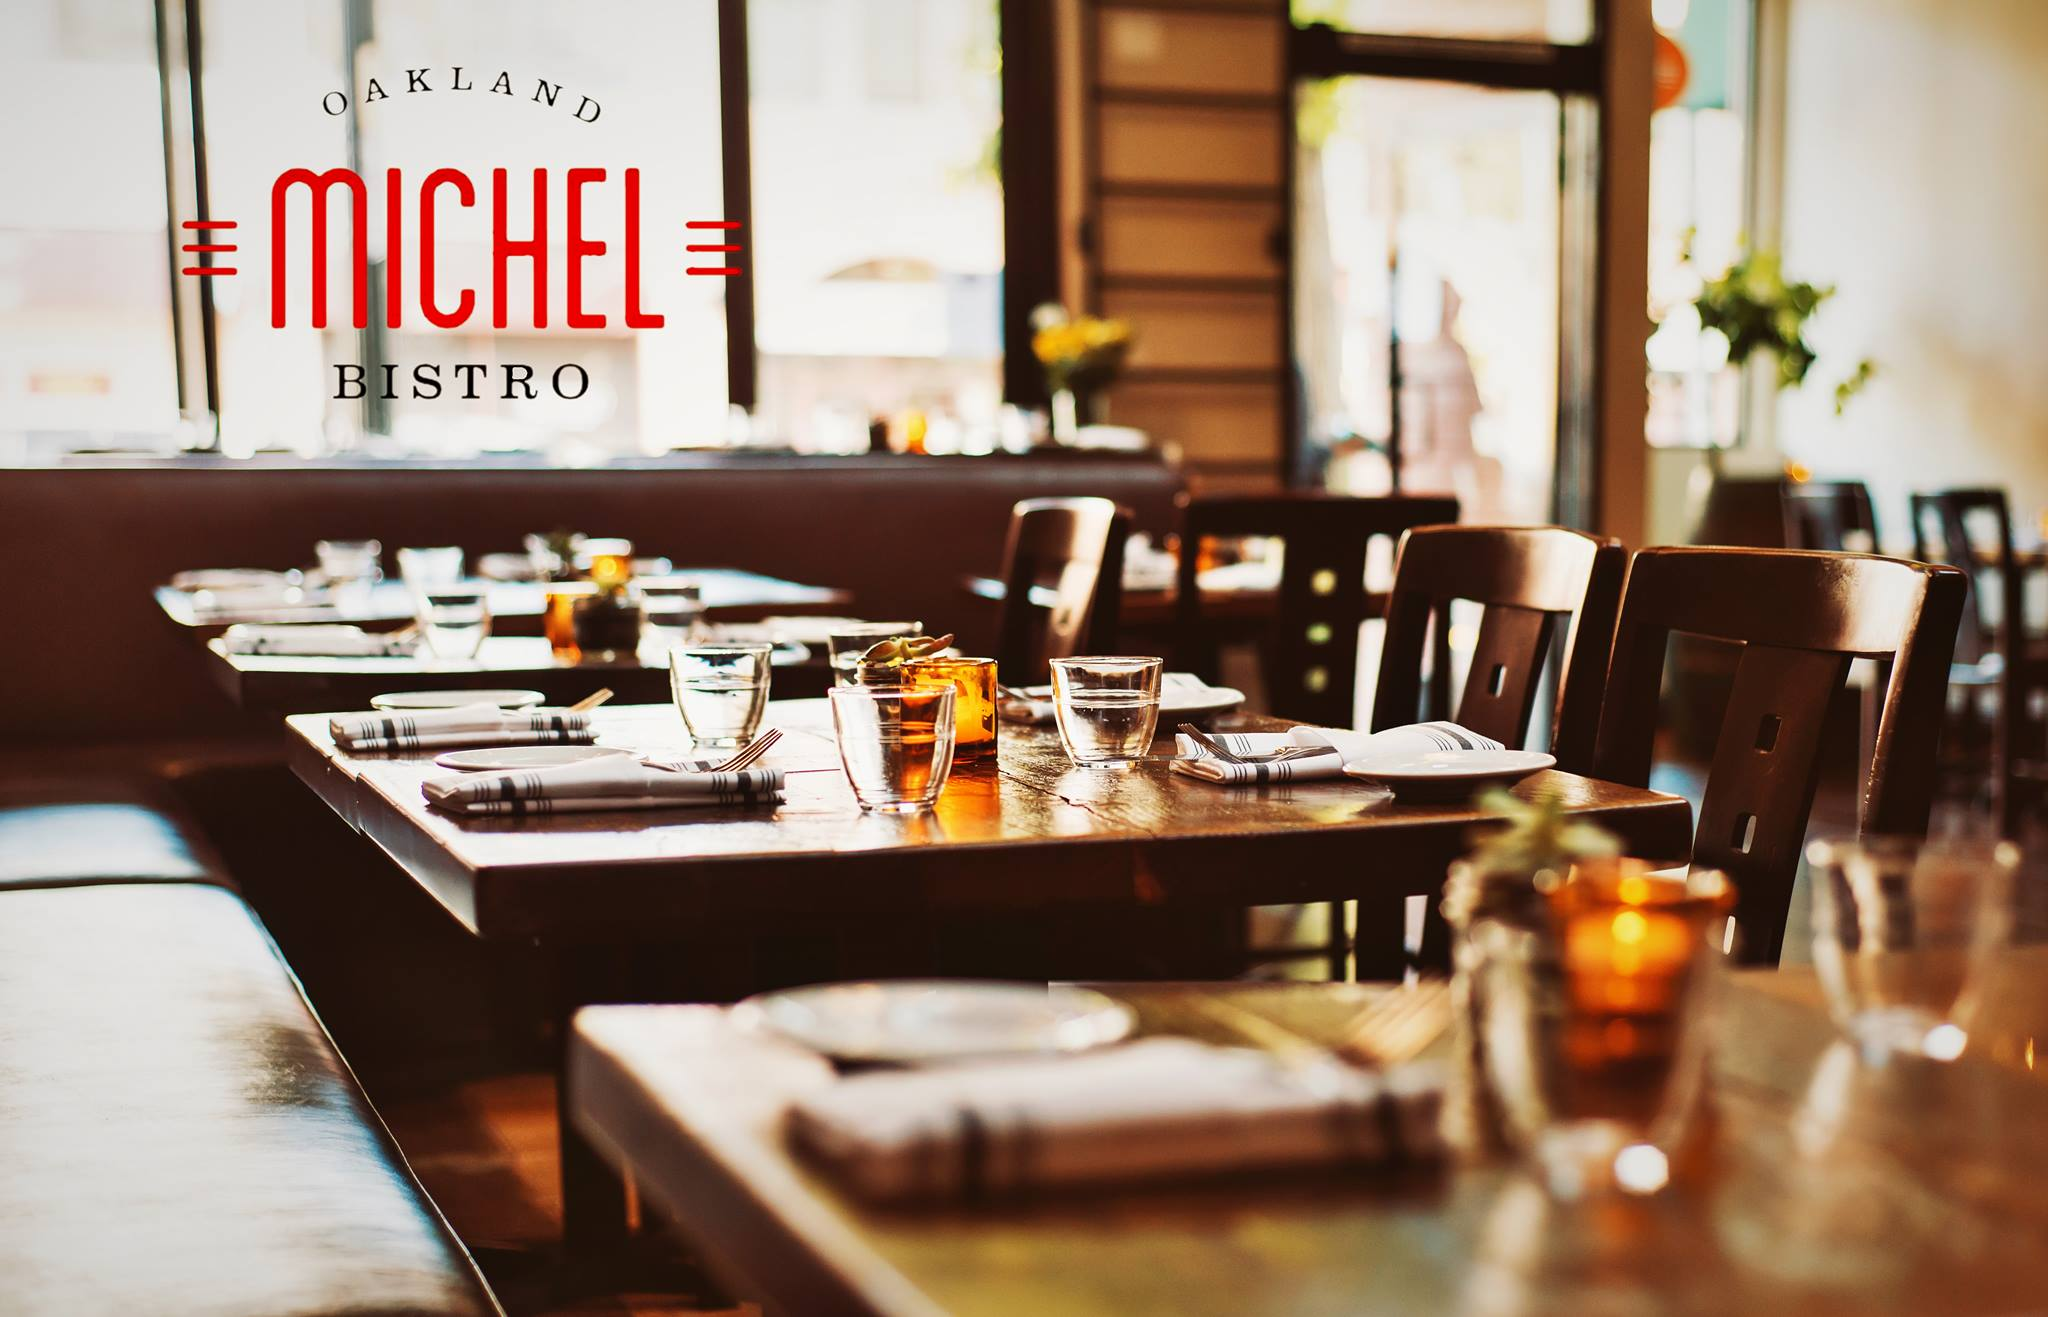 Michel Bistro, Oakland, CA - Localwise business profile picture